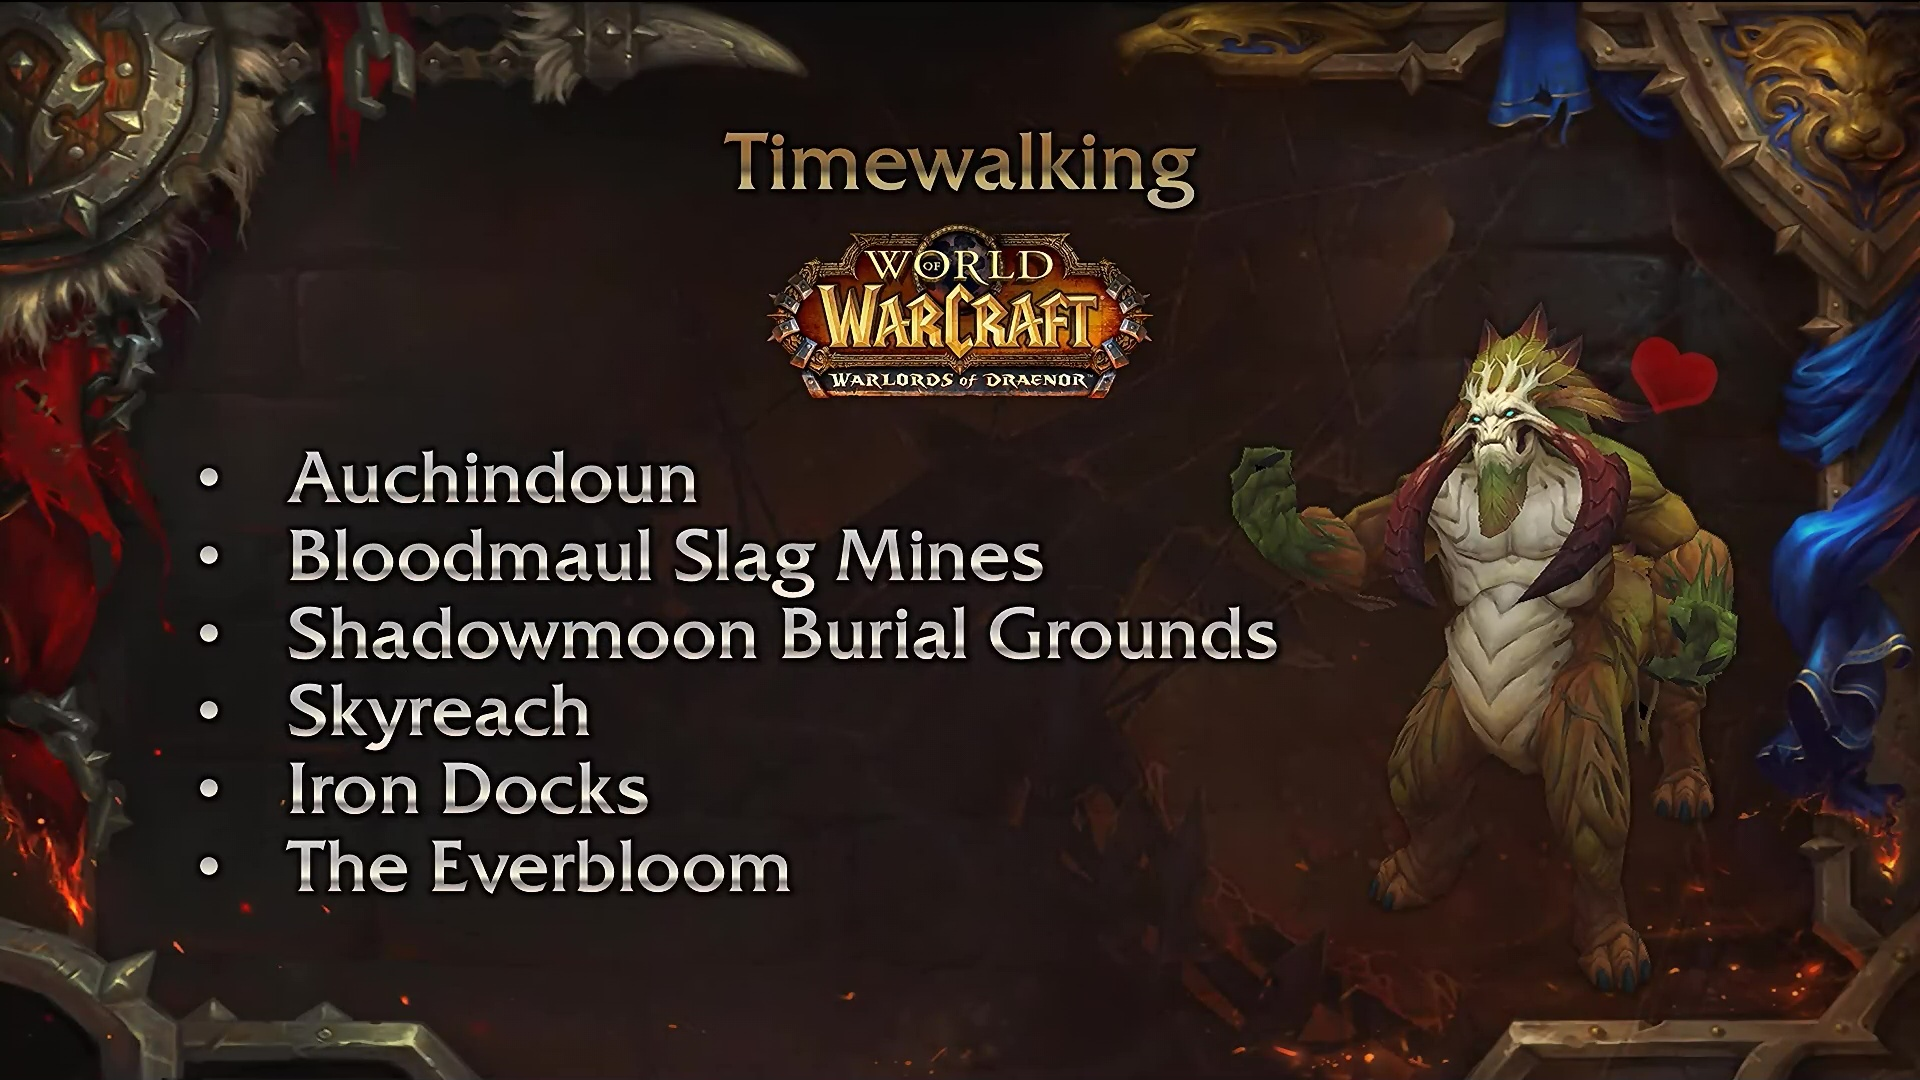 Timewalking Warlords of Draenor